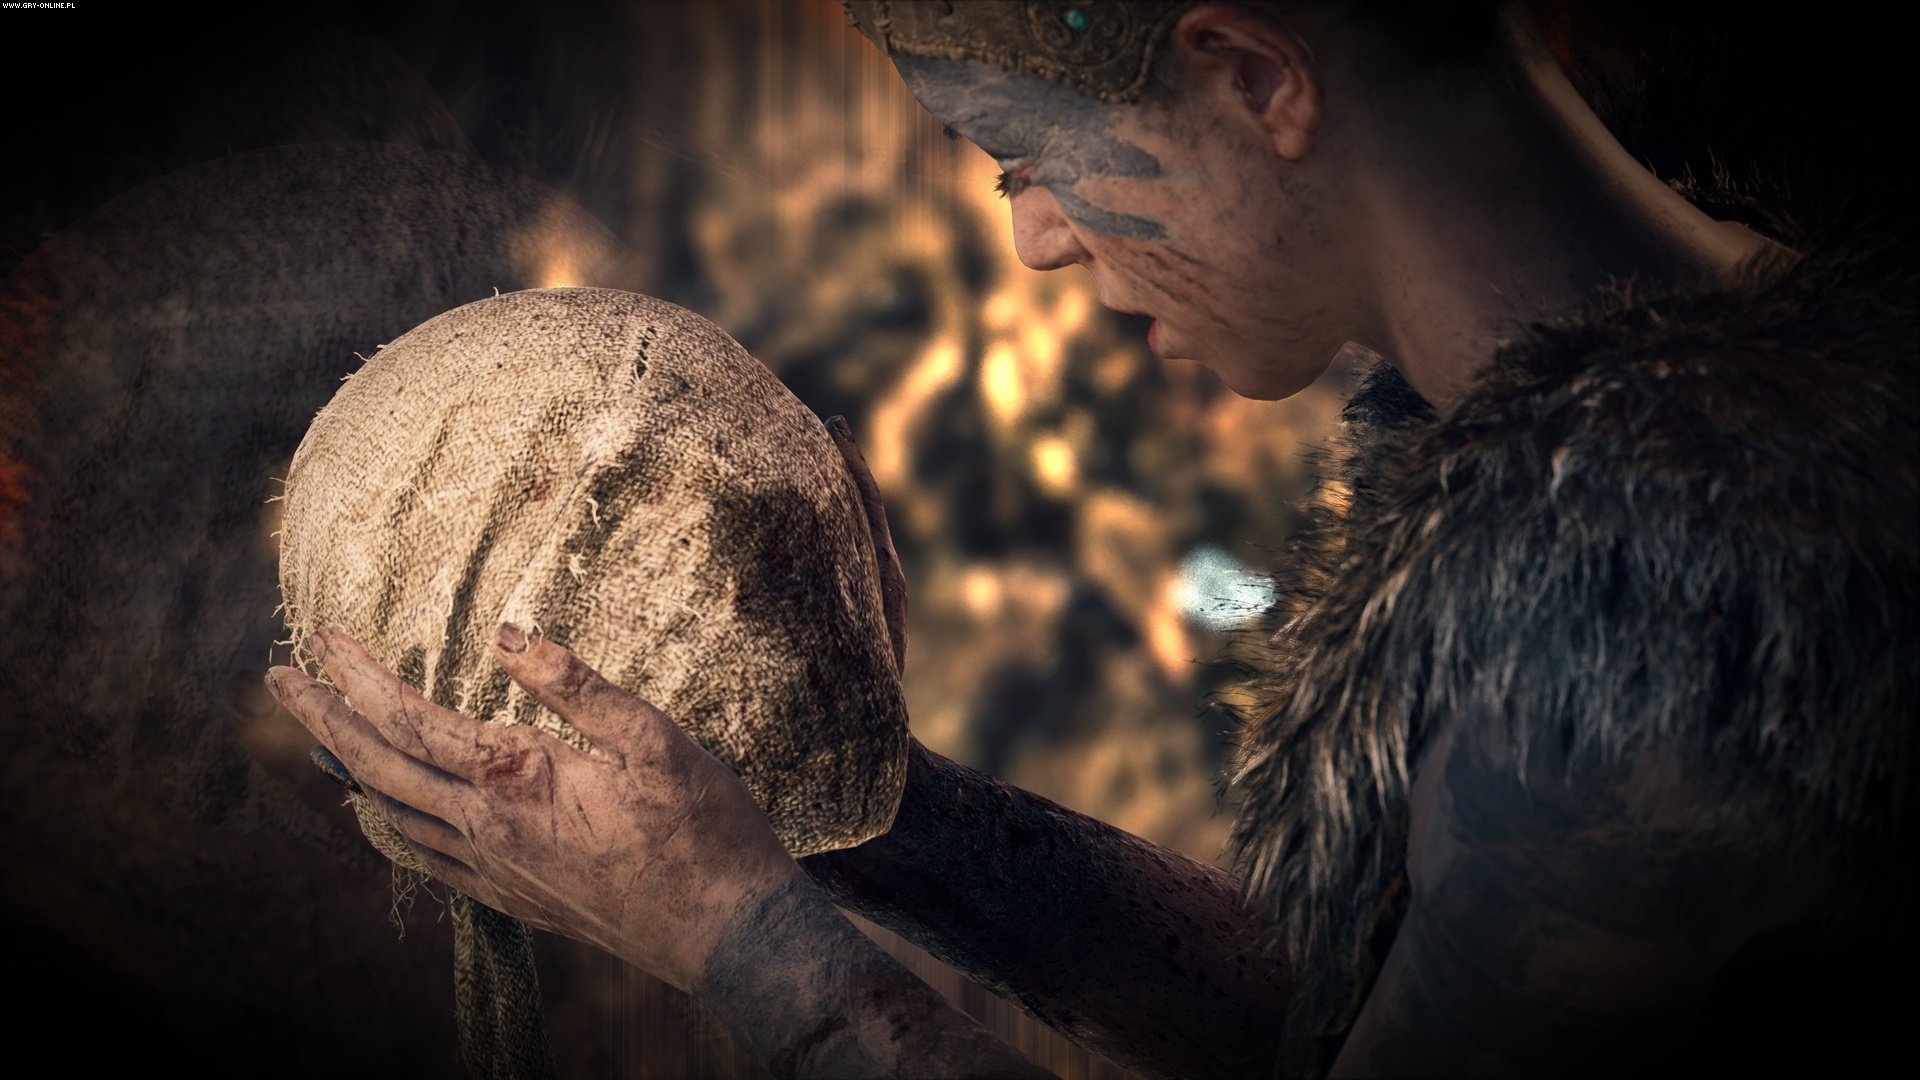 Hellblade: Senua's Sacrifice PS4, PC Gry Screen 6/17, Ninja Theory